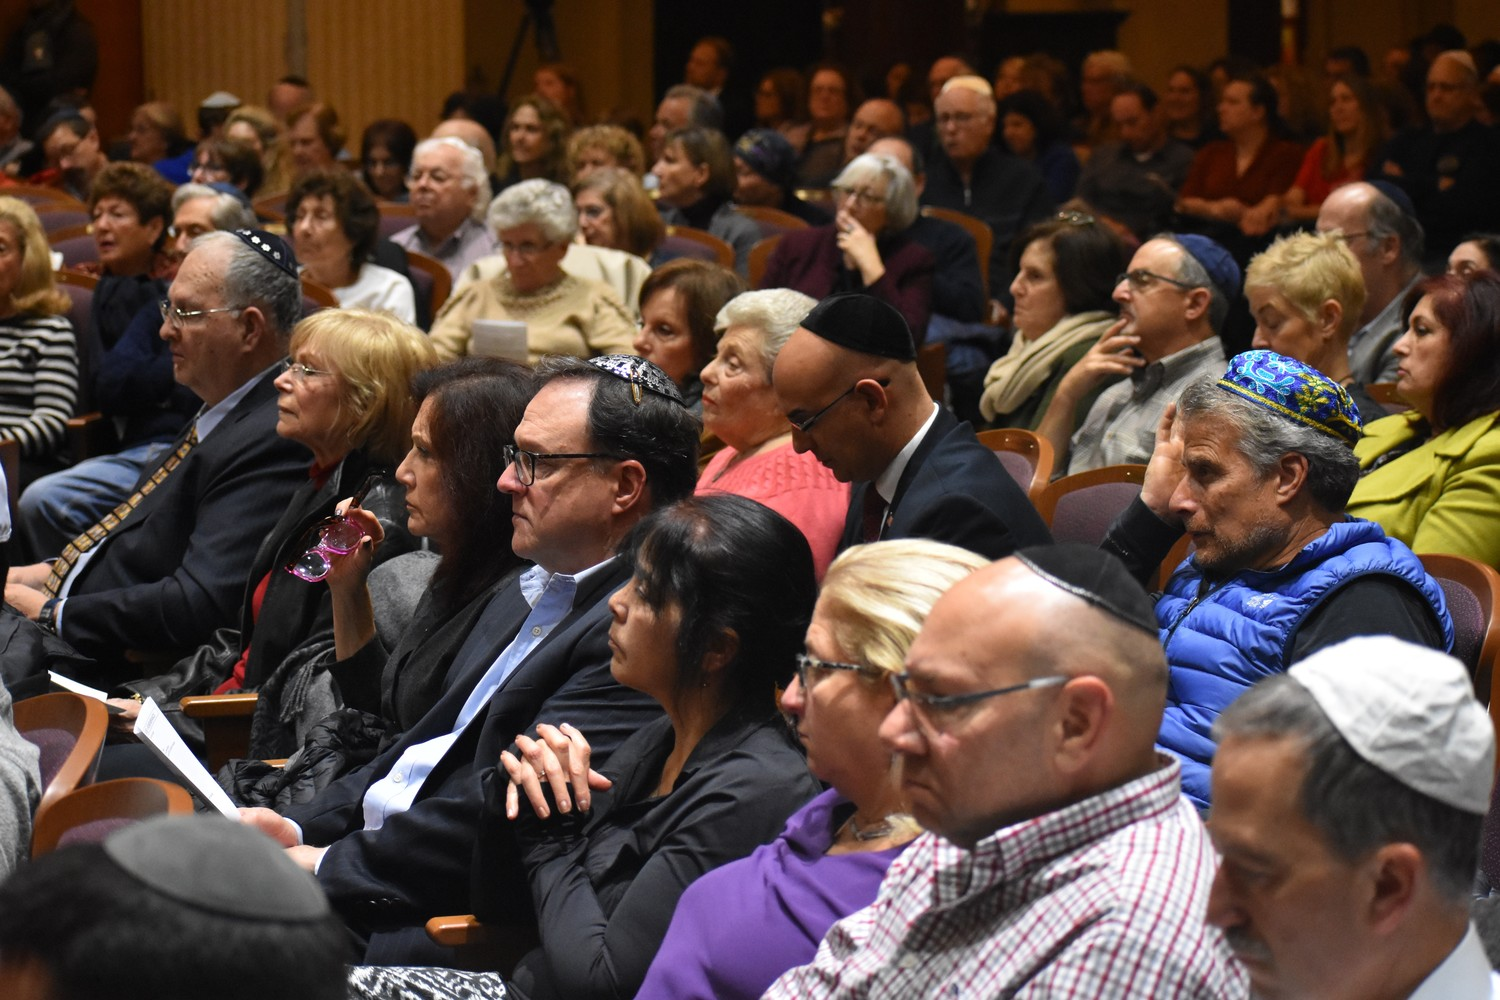 Hundreds mourned the victims at Congregation B'nai Sholom-Beth David.